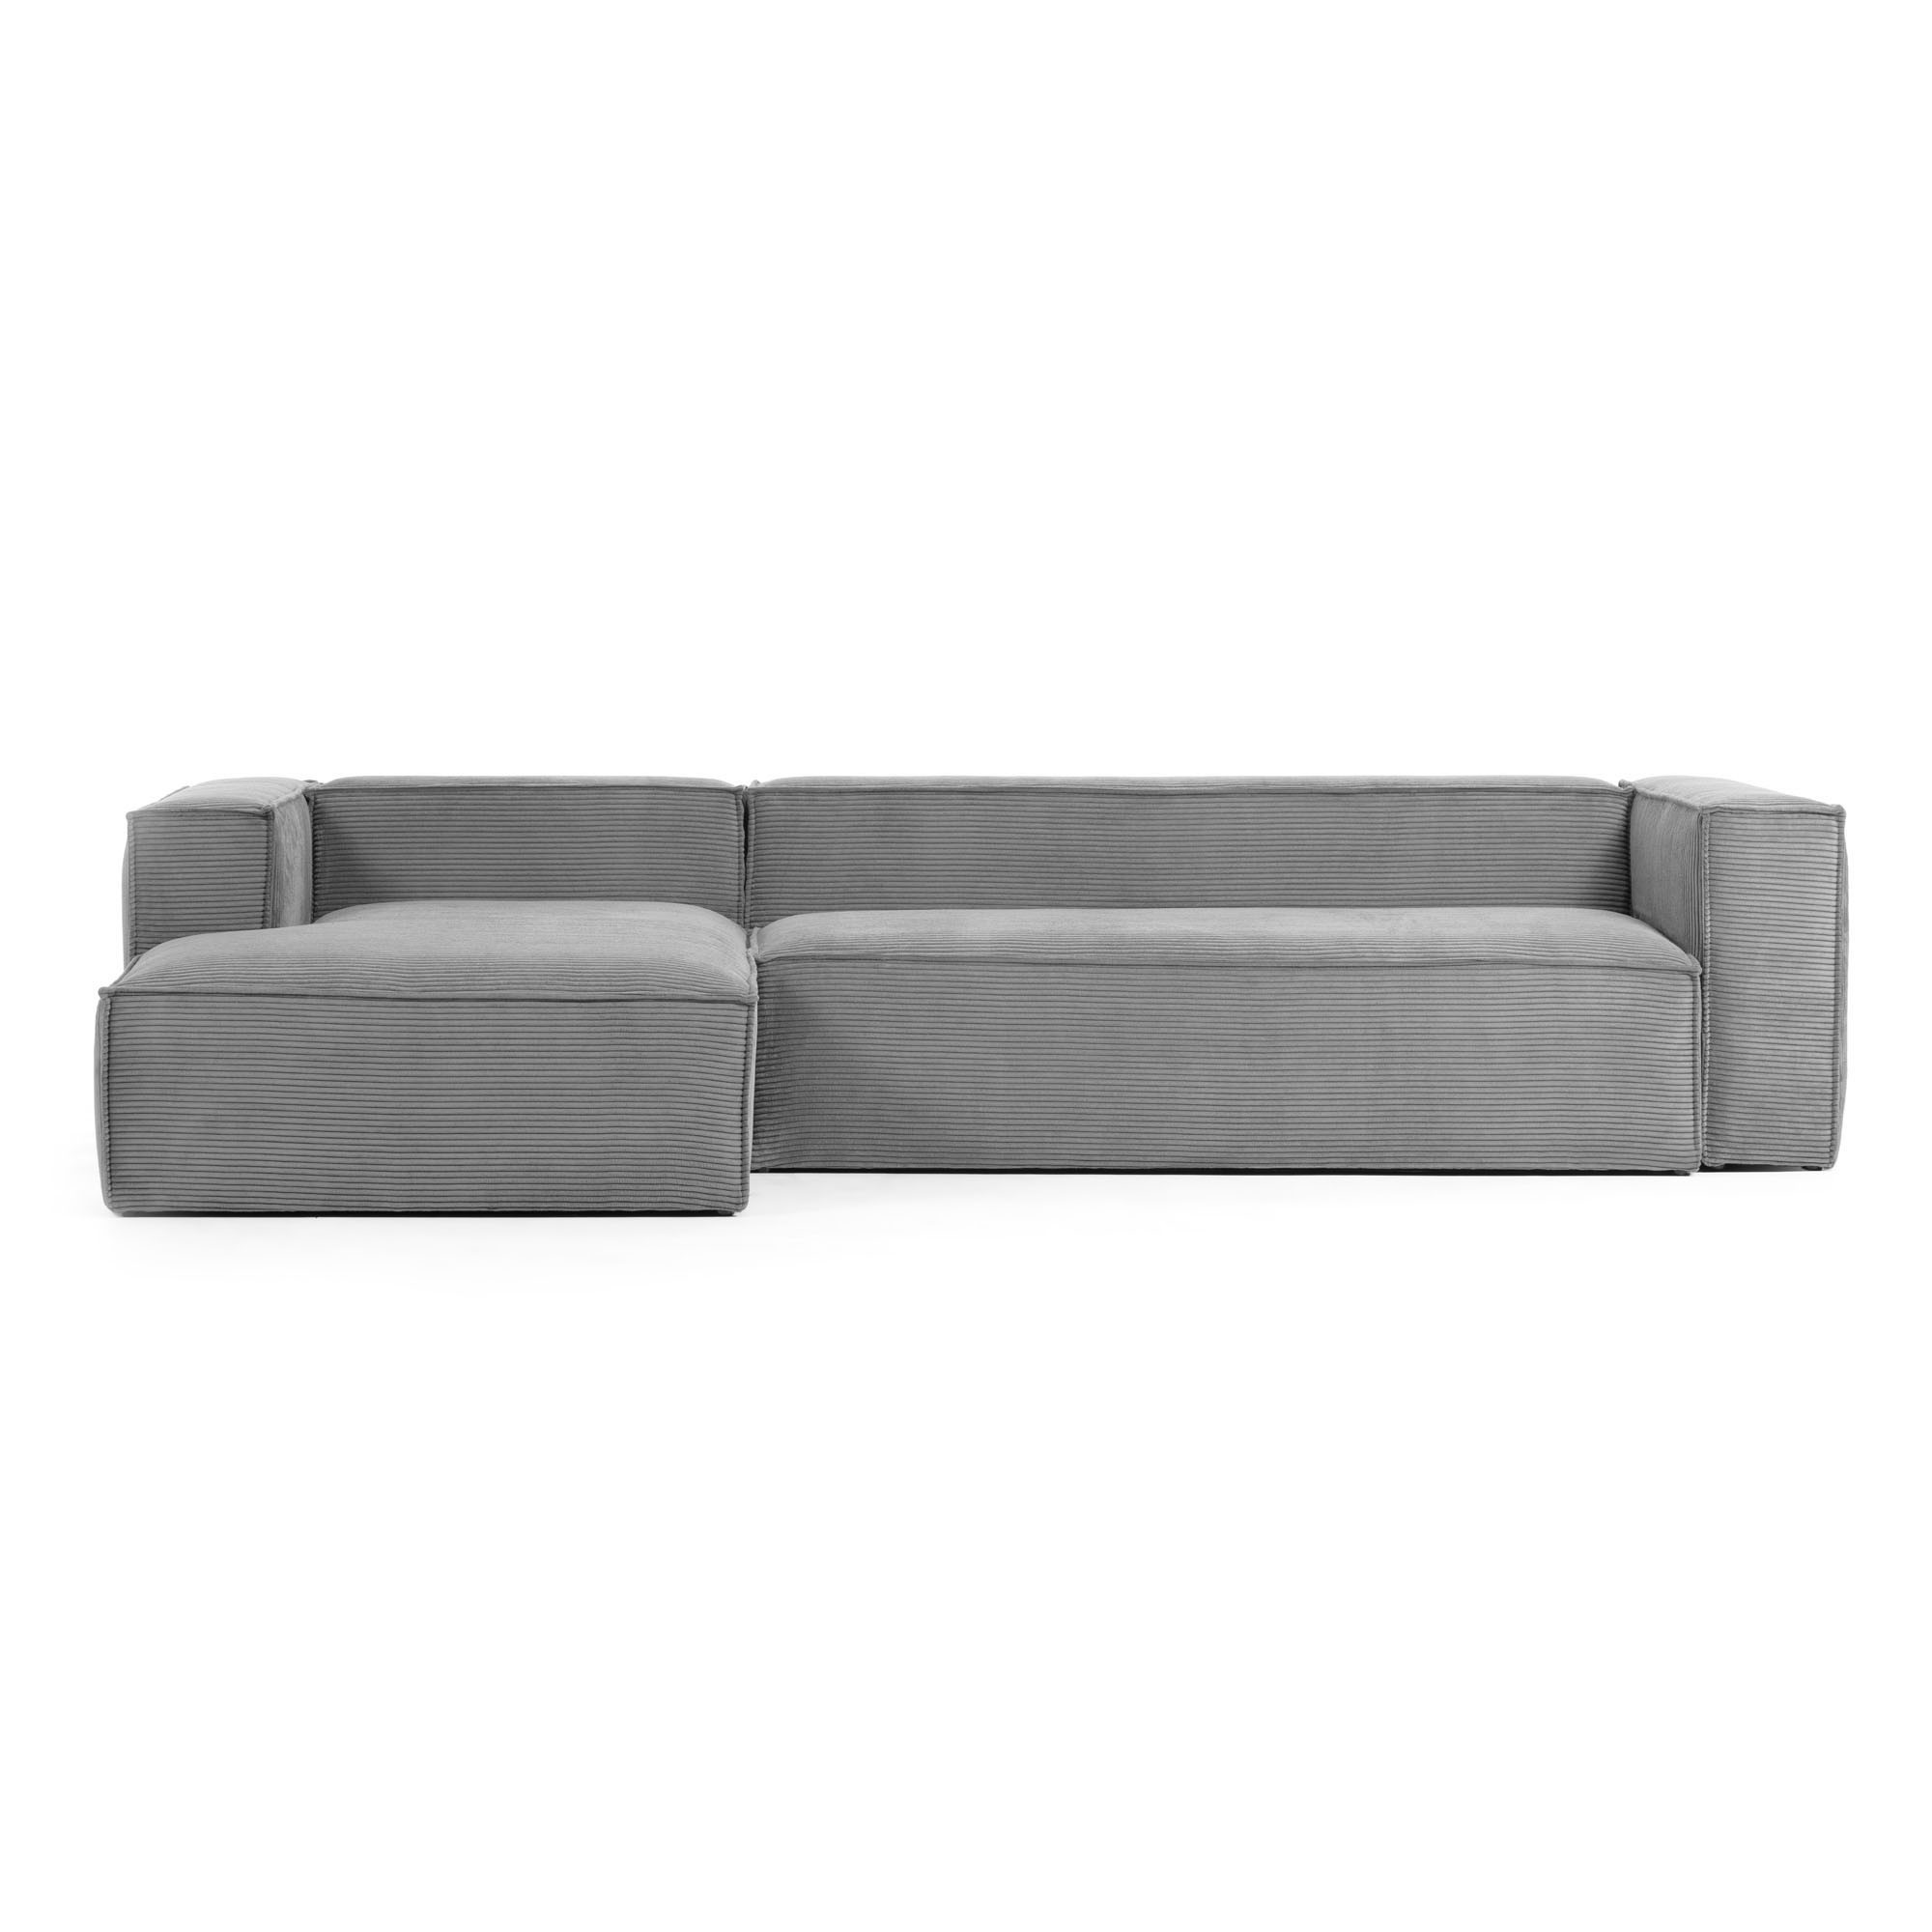 Lorton Corduroy Fabric Corner Sofa, 2 Seater with LHF Chaise, Grey